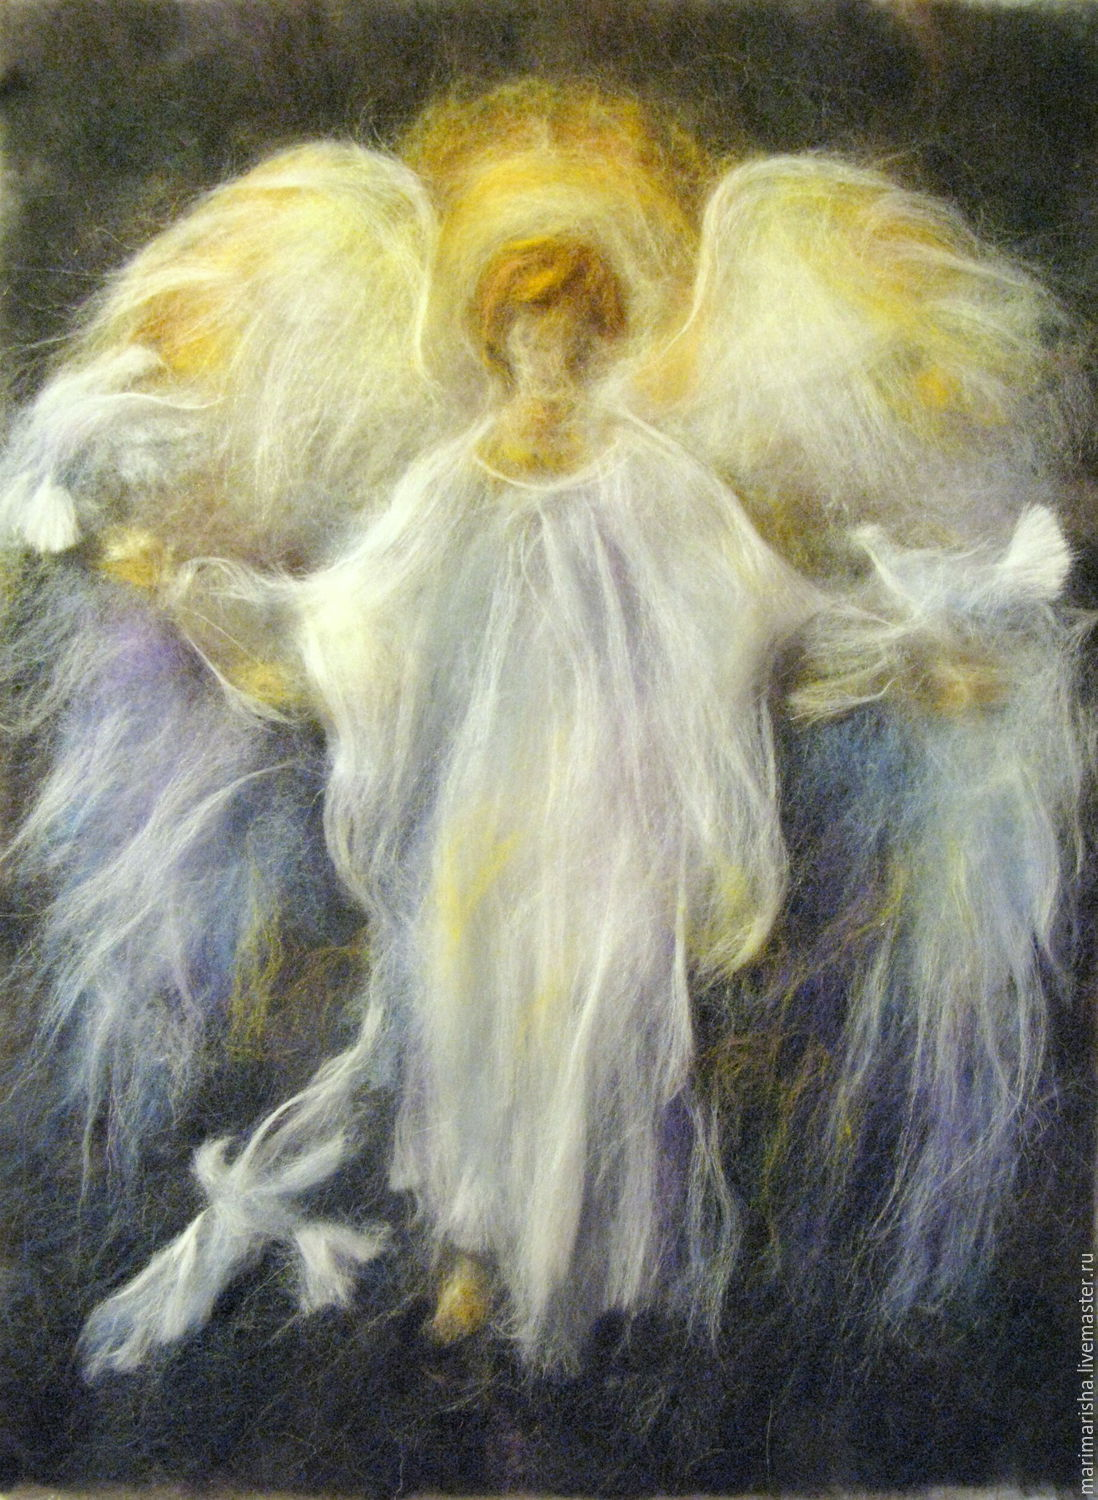 Picture From The Wool Of The Guardian Angel Shop Online